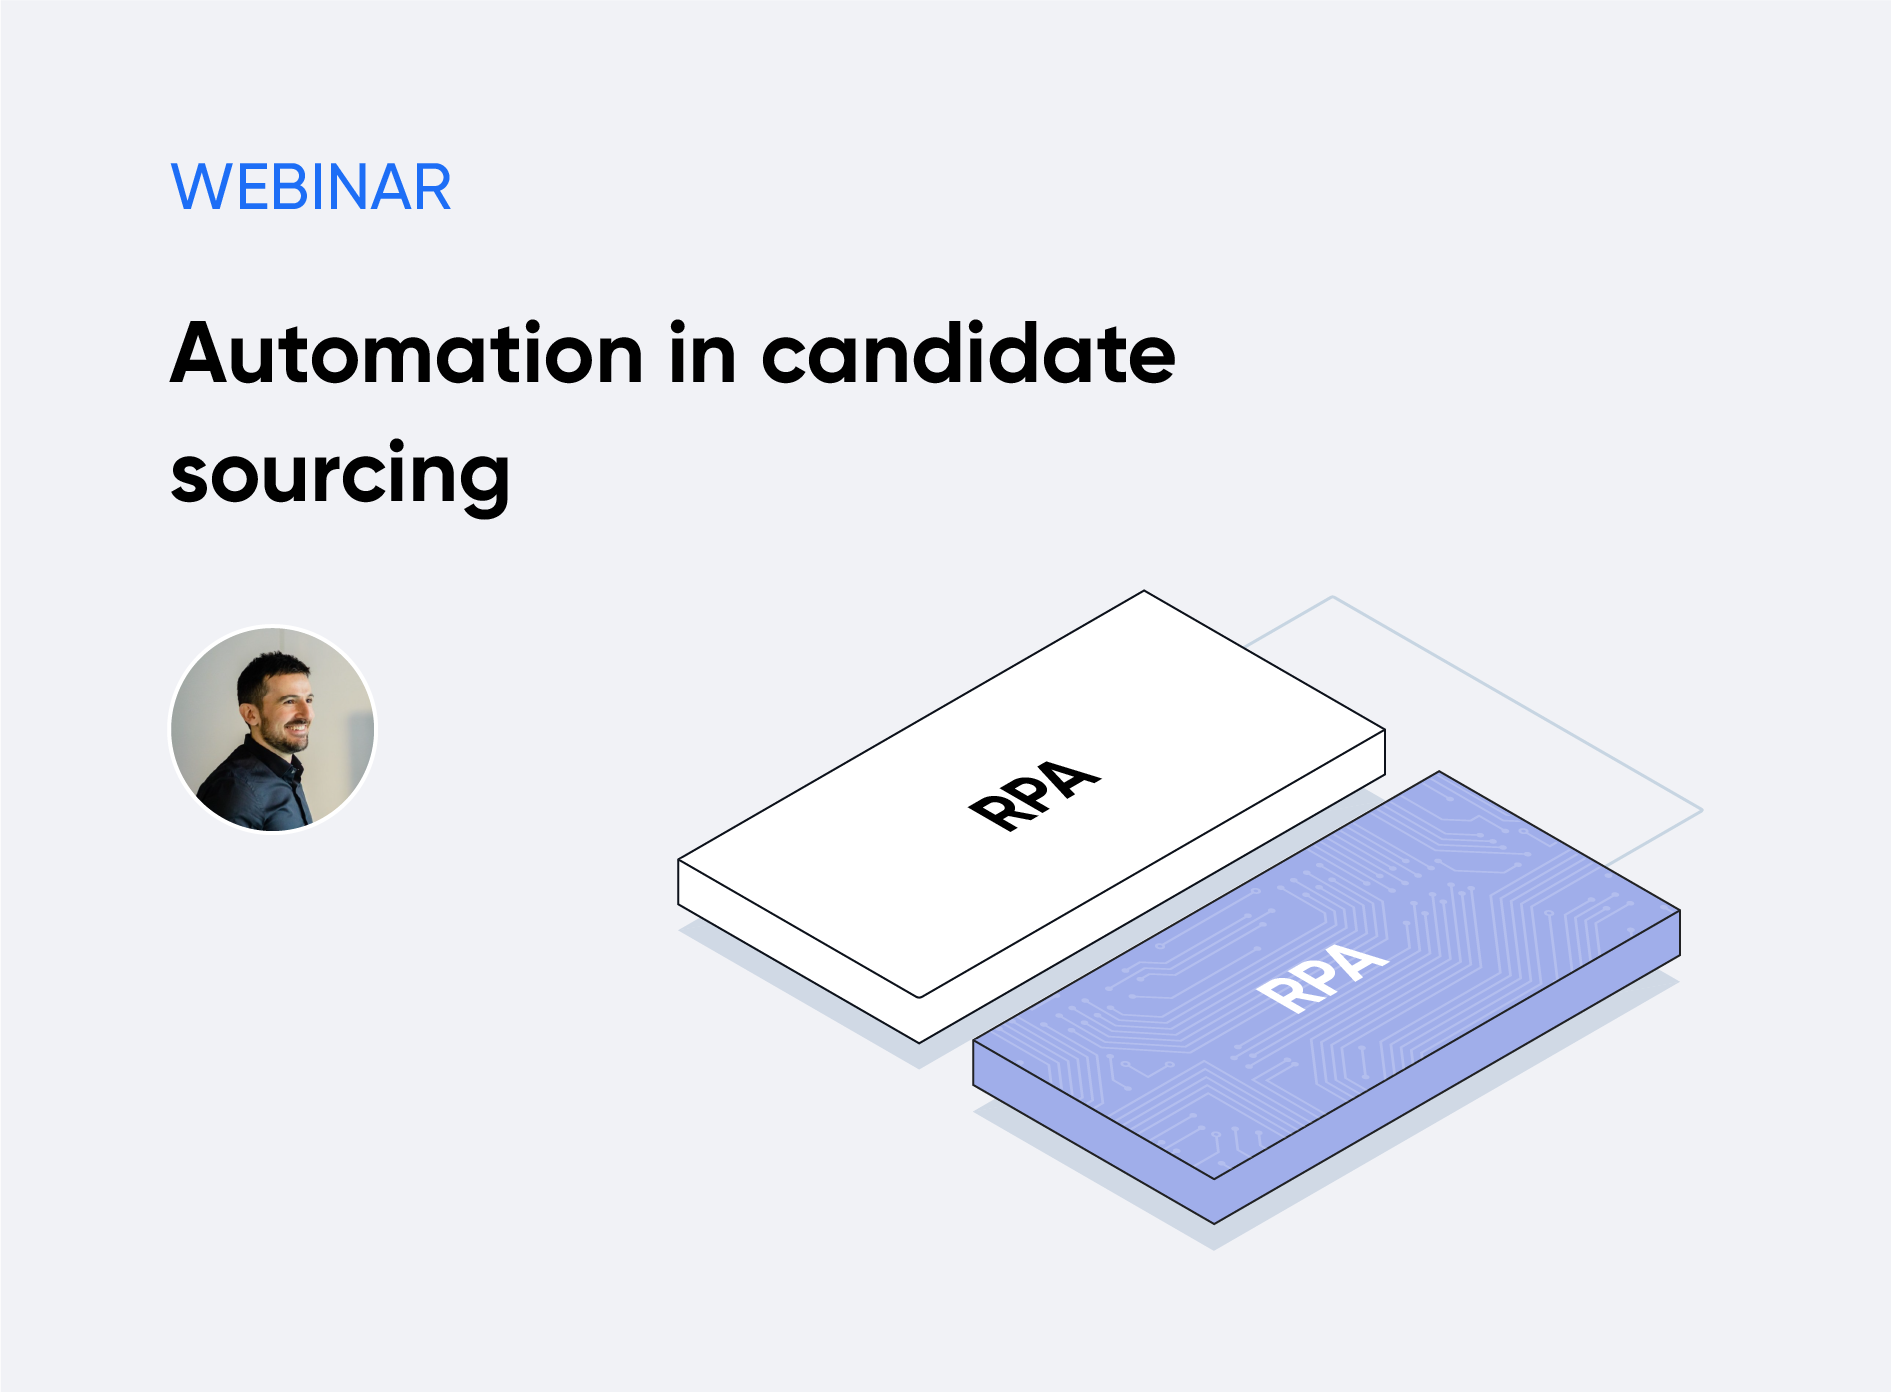 Automation in candidate sourcing